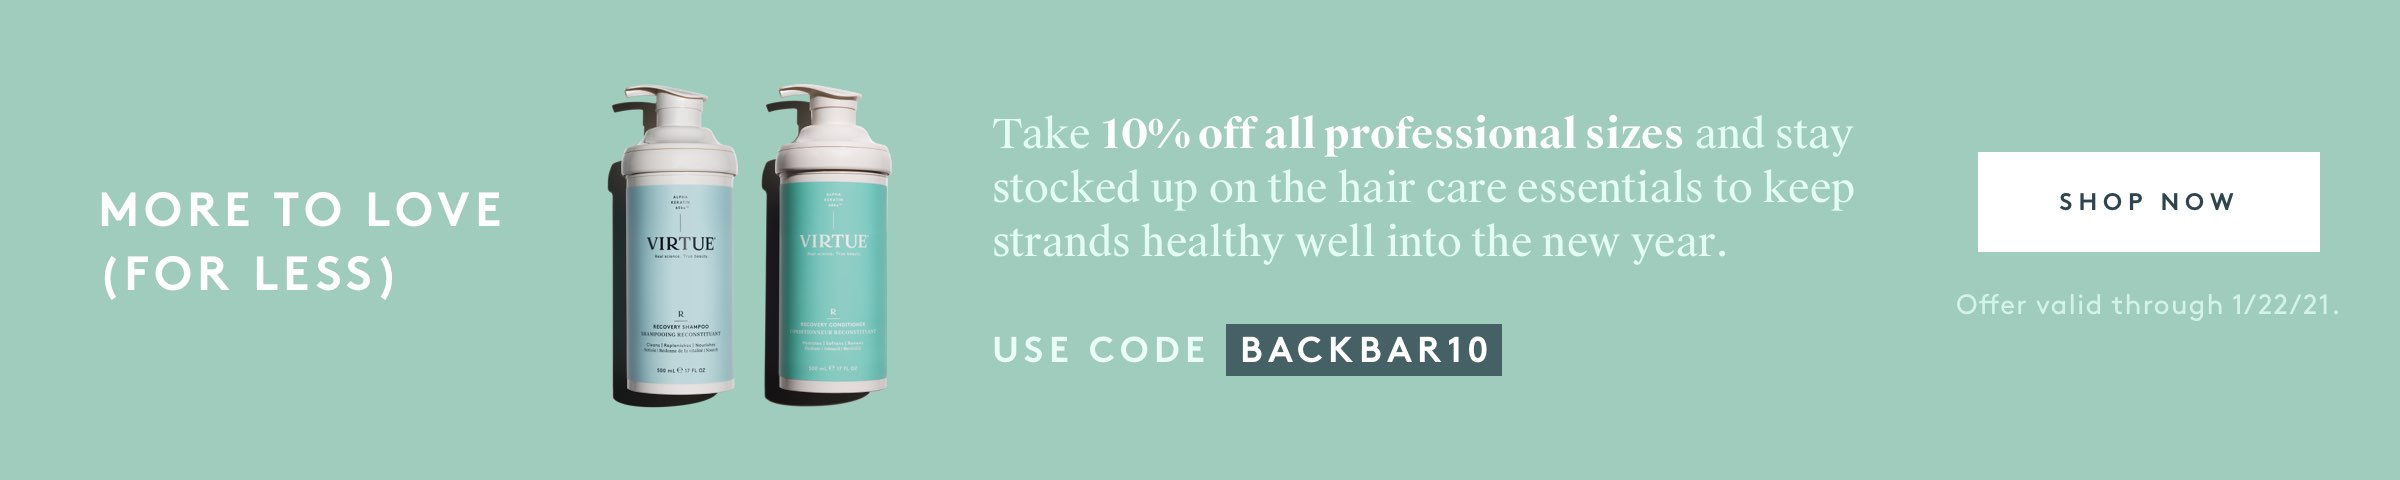 Take 10% Off All Professional Sizes